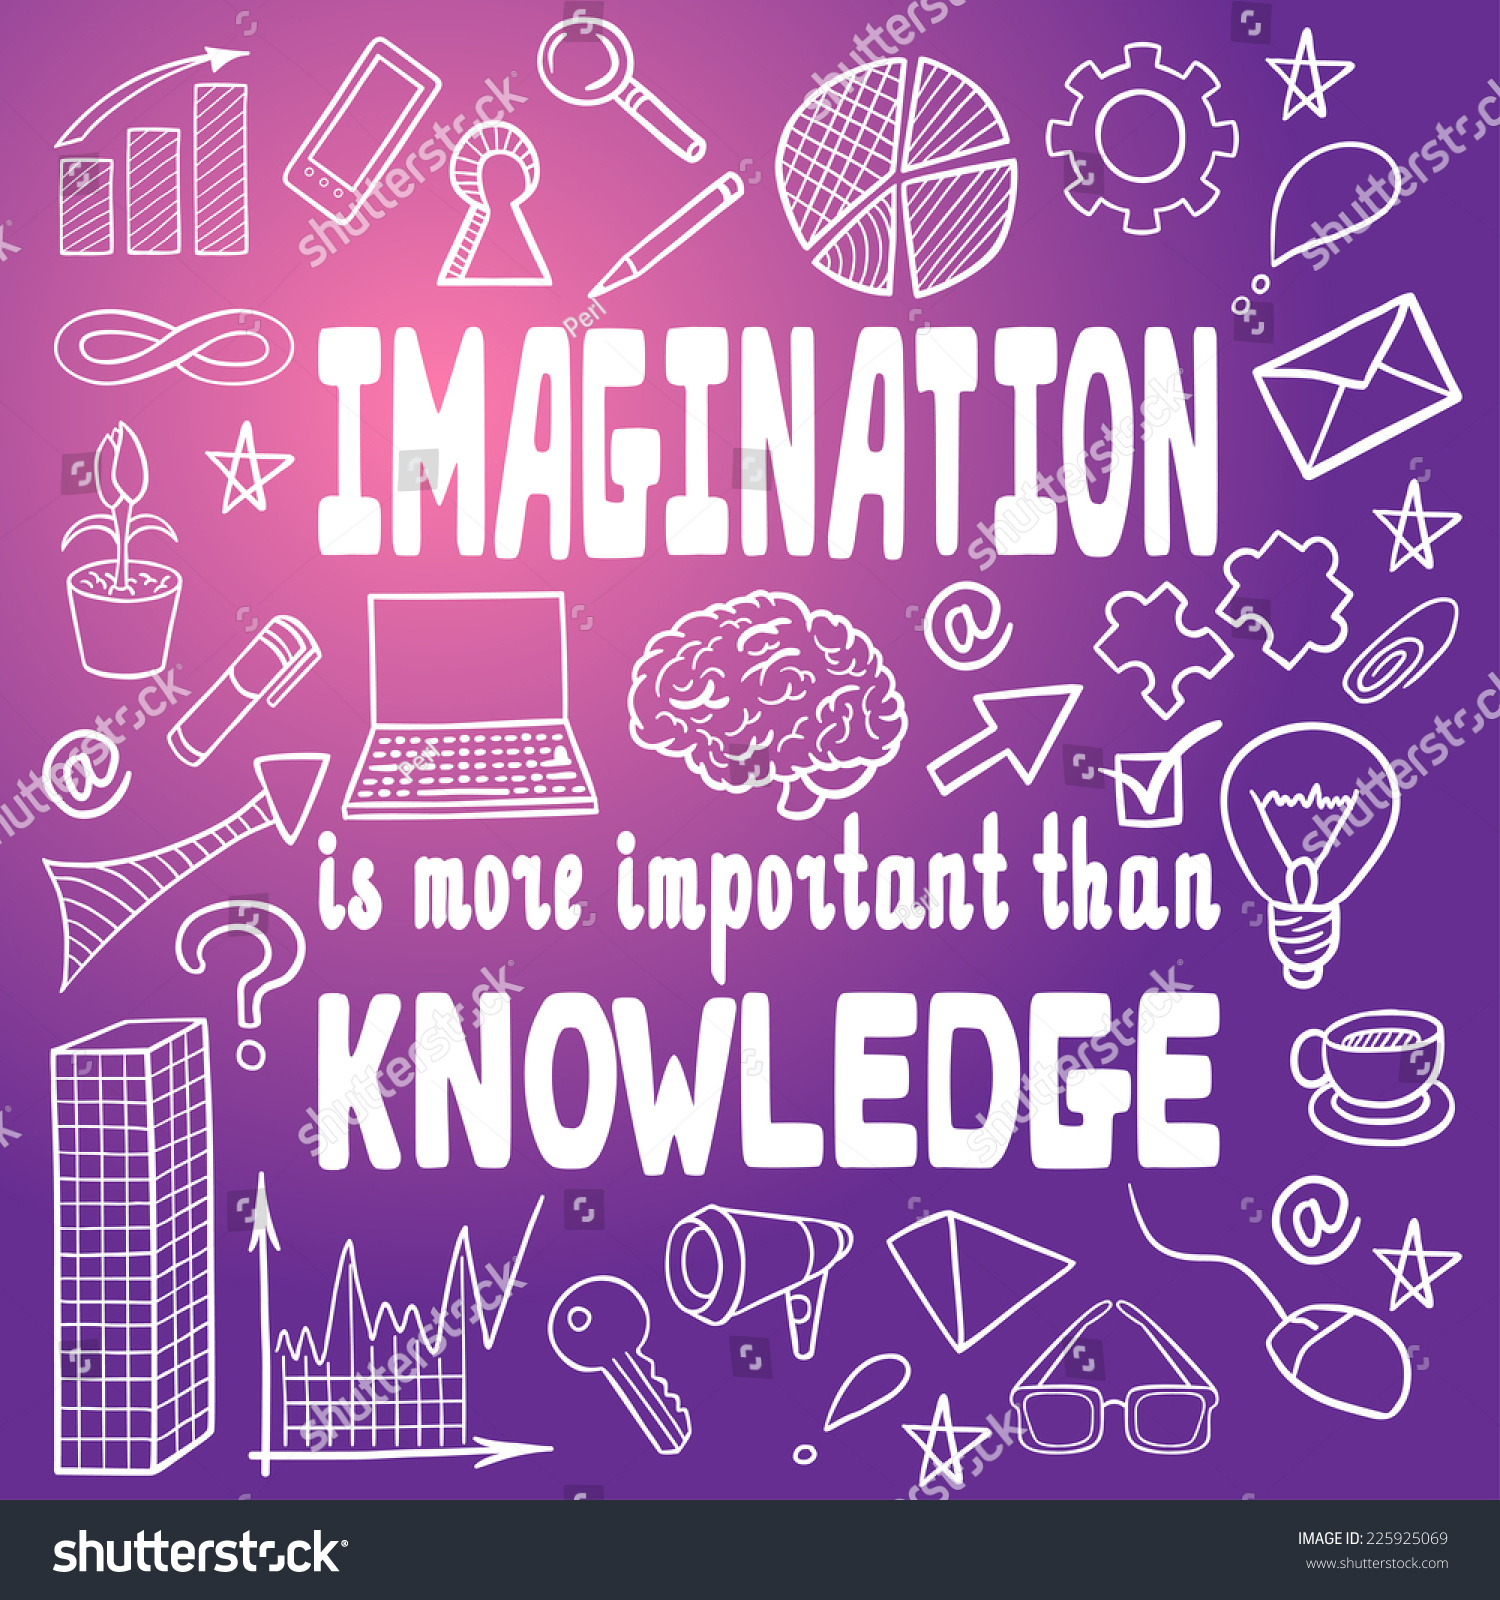 "imagination and knowledge essay Is imagination more important than knowledge albert einstein certainly thought so he said: ""i'm enough of an artist to draw freely on my imagination, which i think is more important than ."